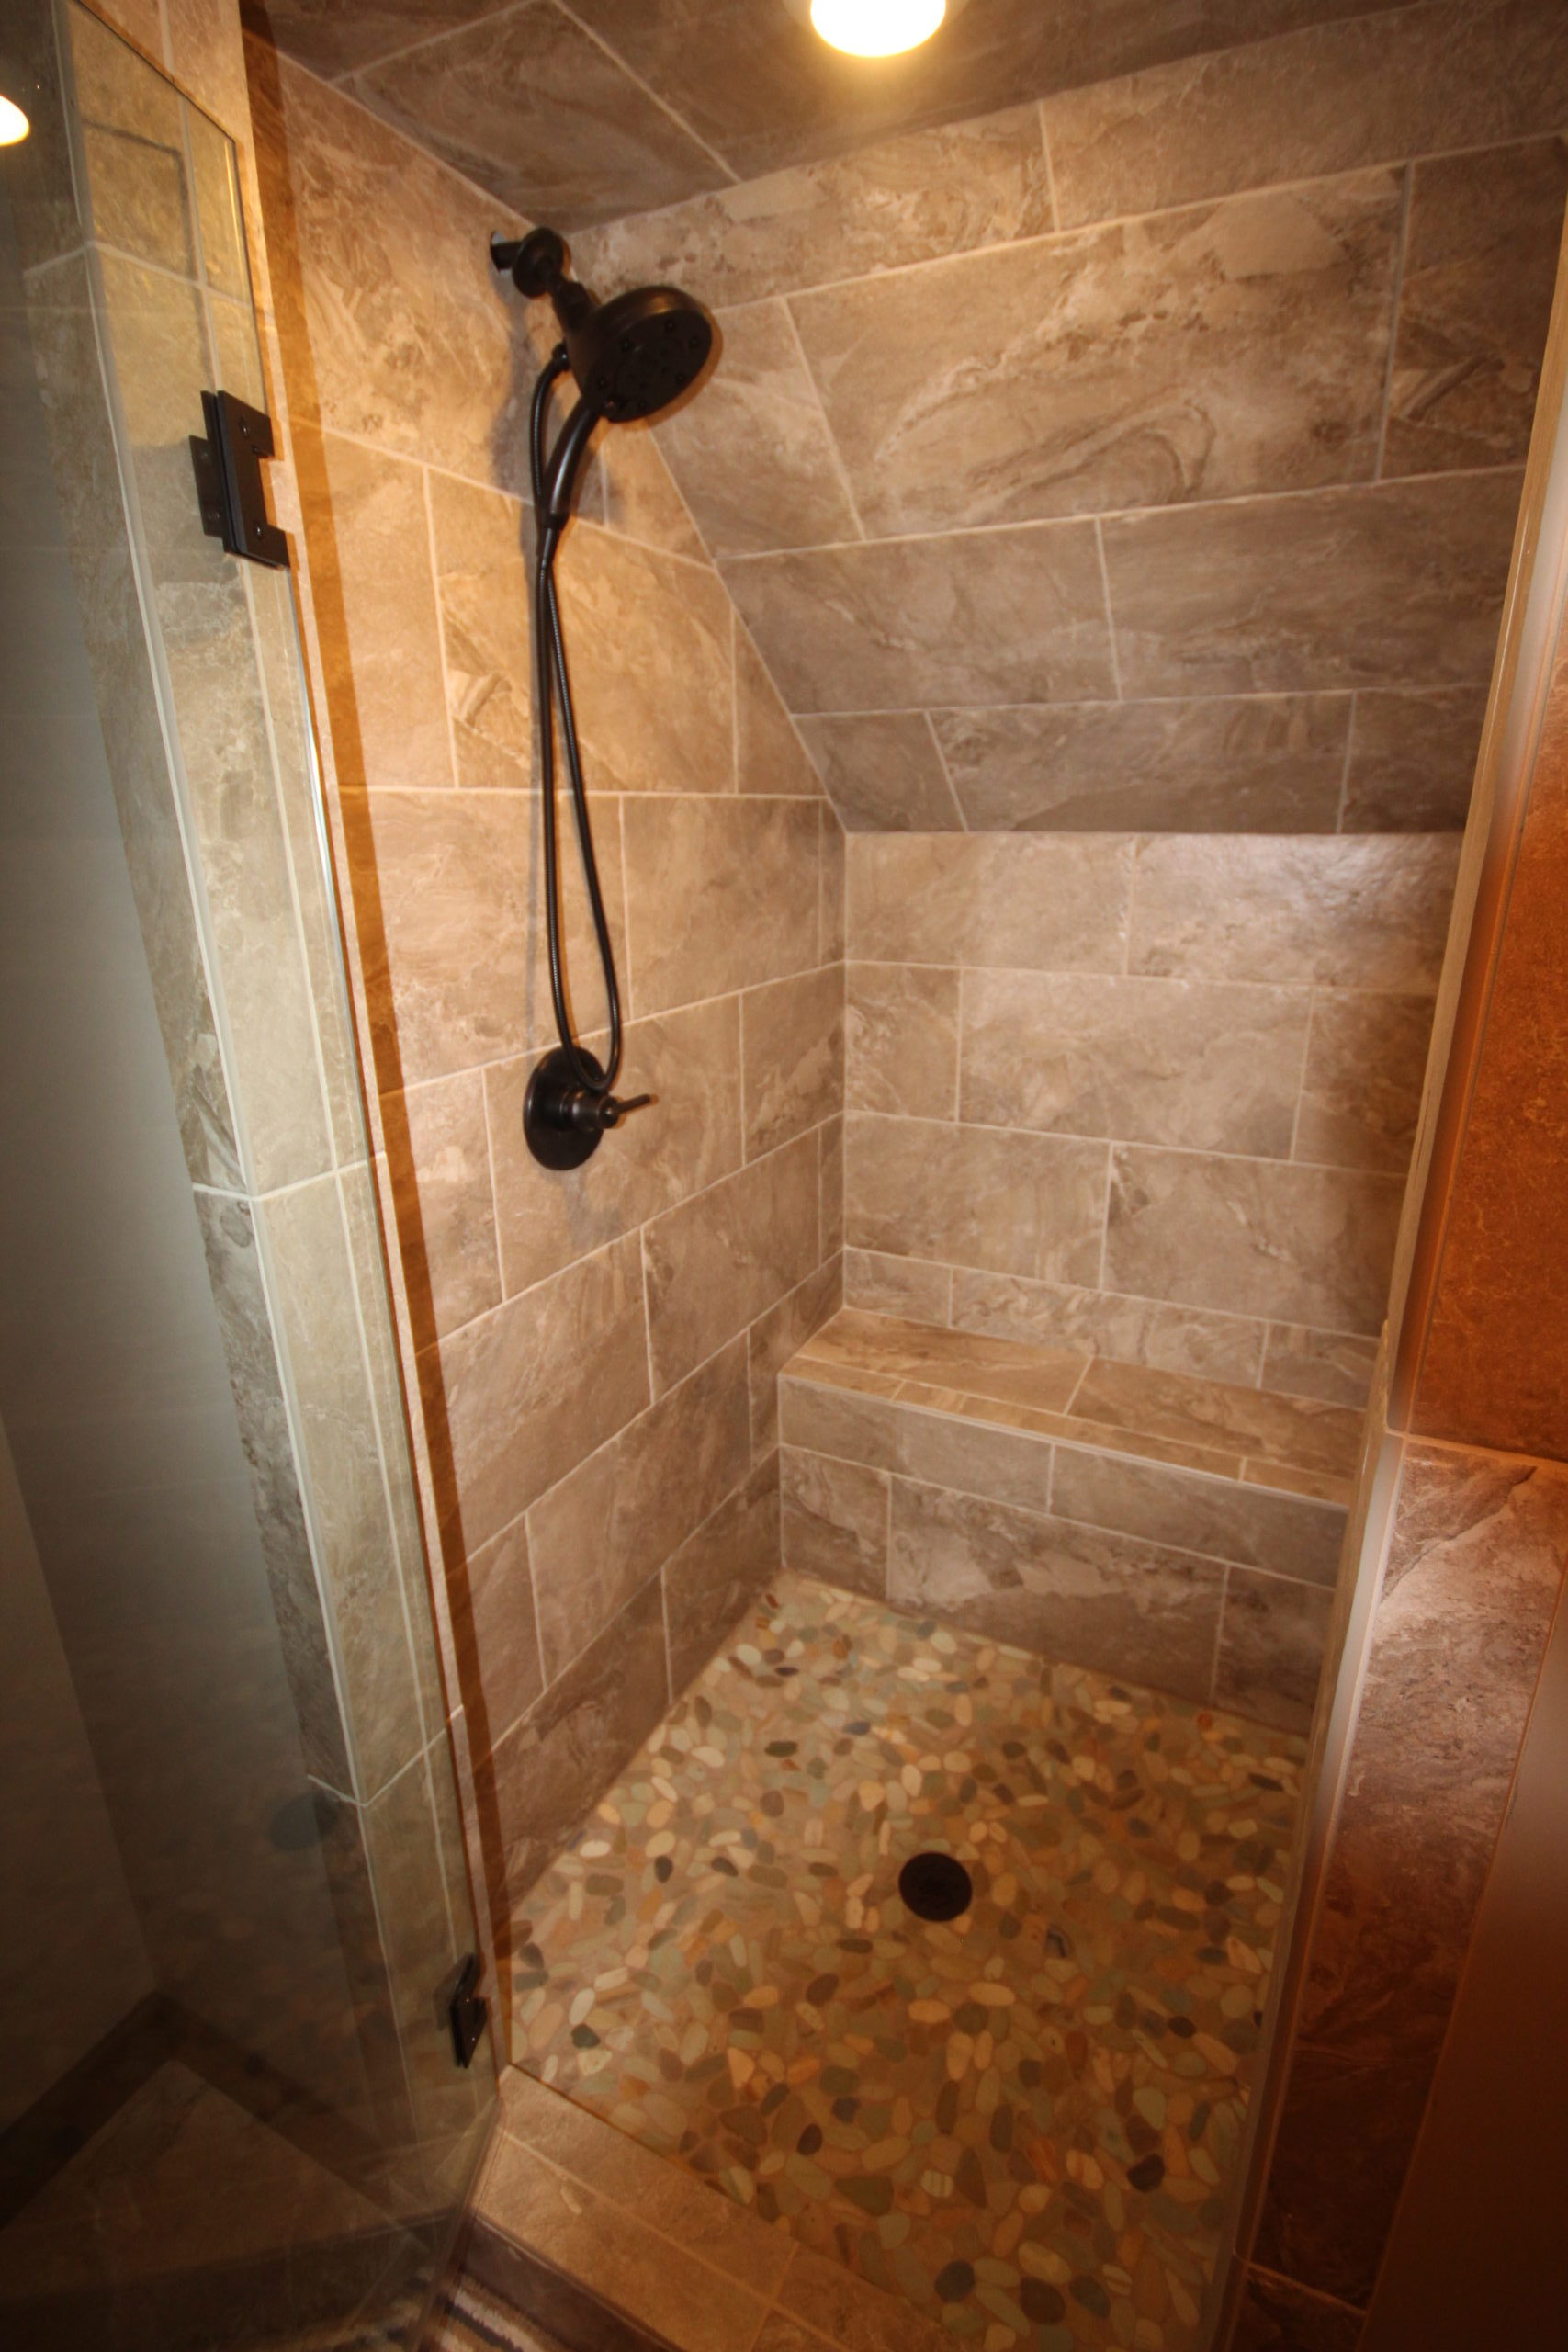 bathroom-remodeling-work-TAG-Builders-104-WW-Bathroom-remodel-6-scaled-e1586518058735